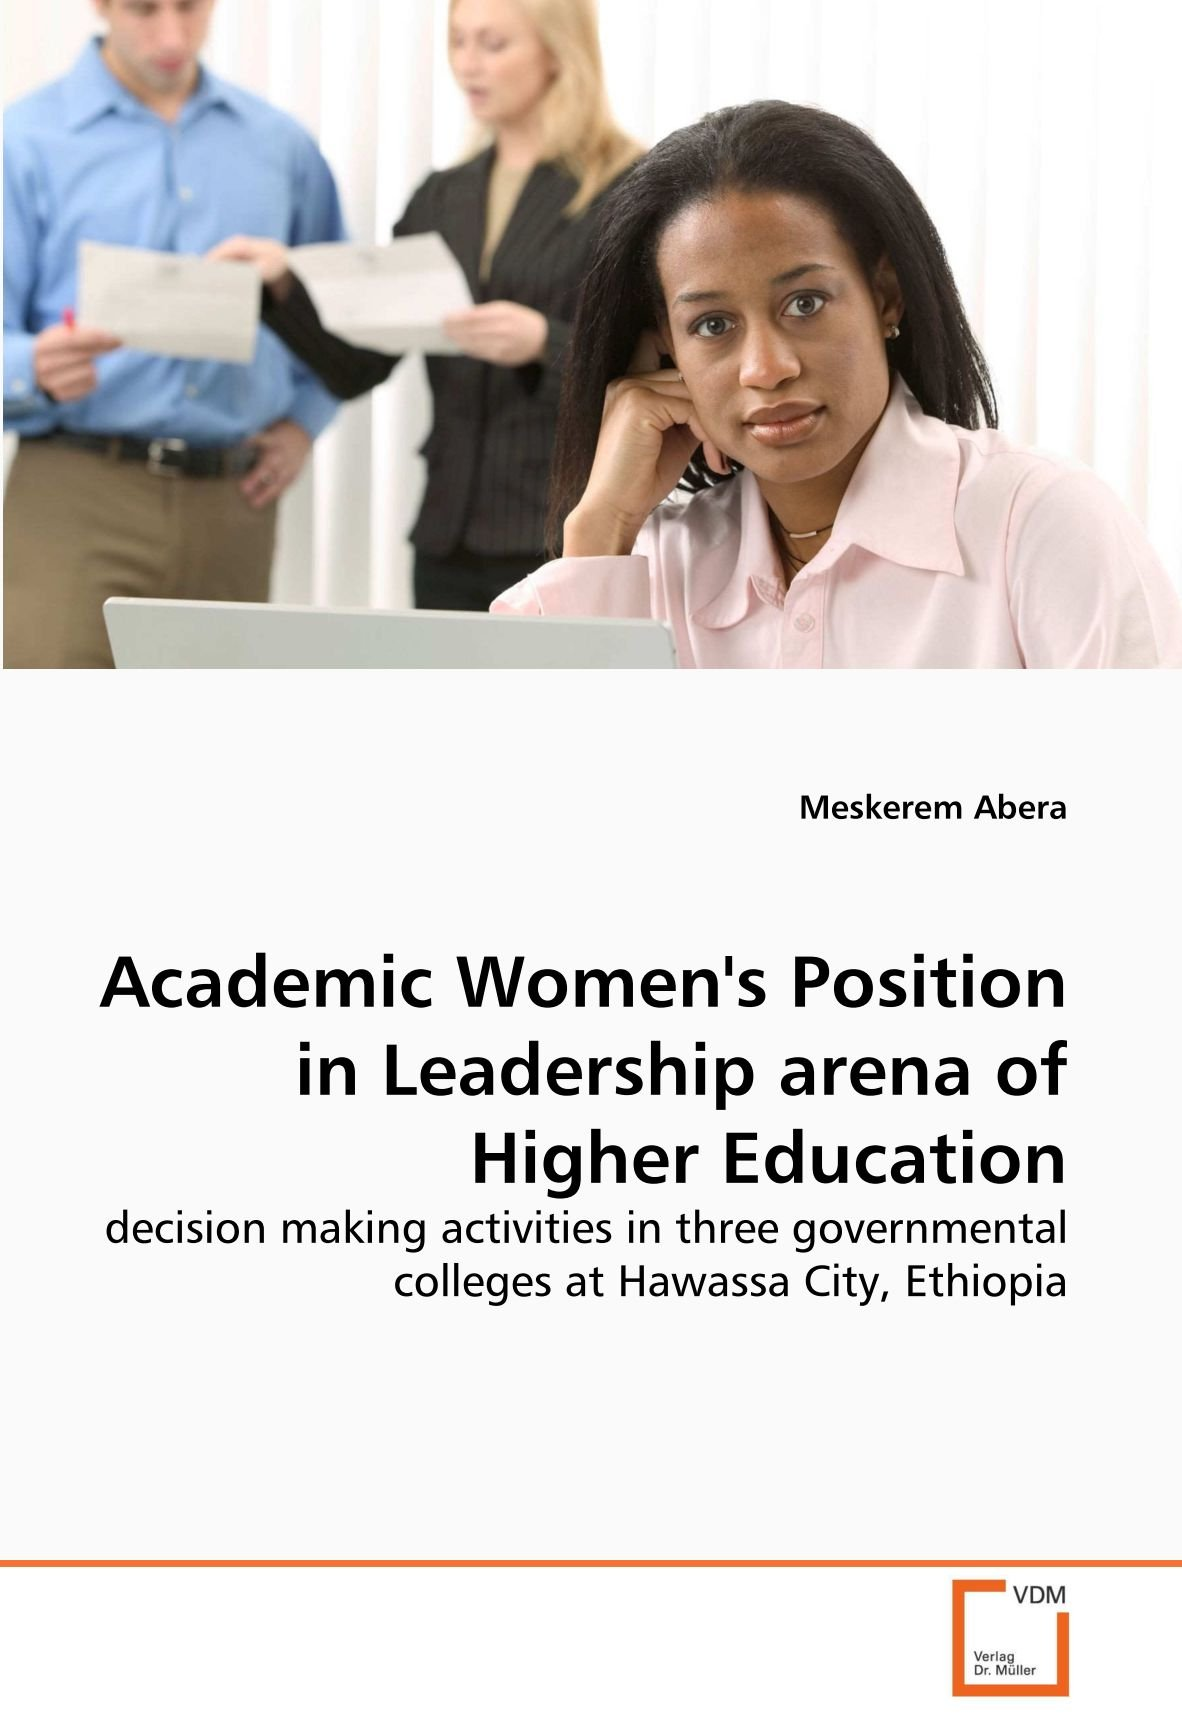 Academic Women's Position in Leadership arena of Higher Education: decision making activities in three governmental colleges at Hawassa City, Ethiopia ebook